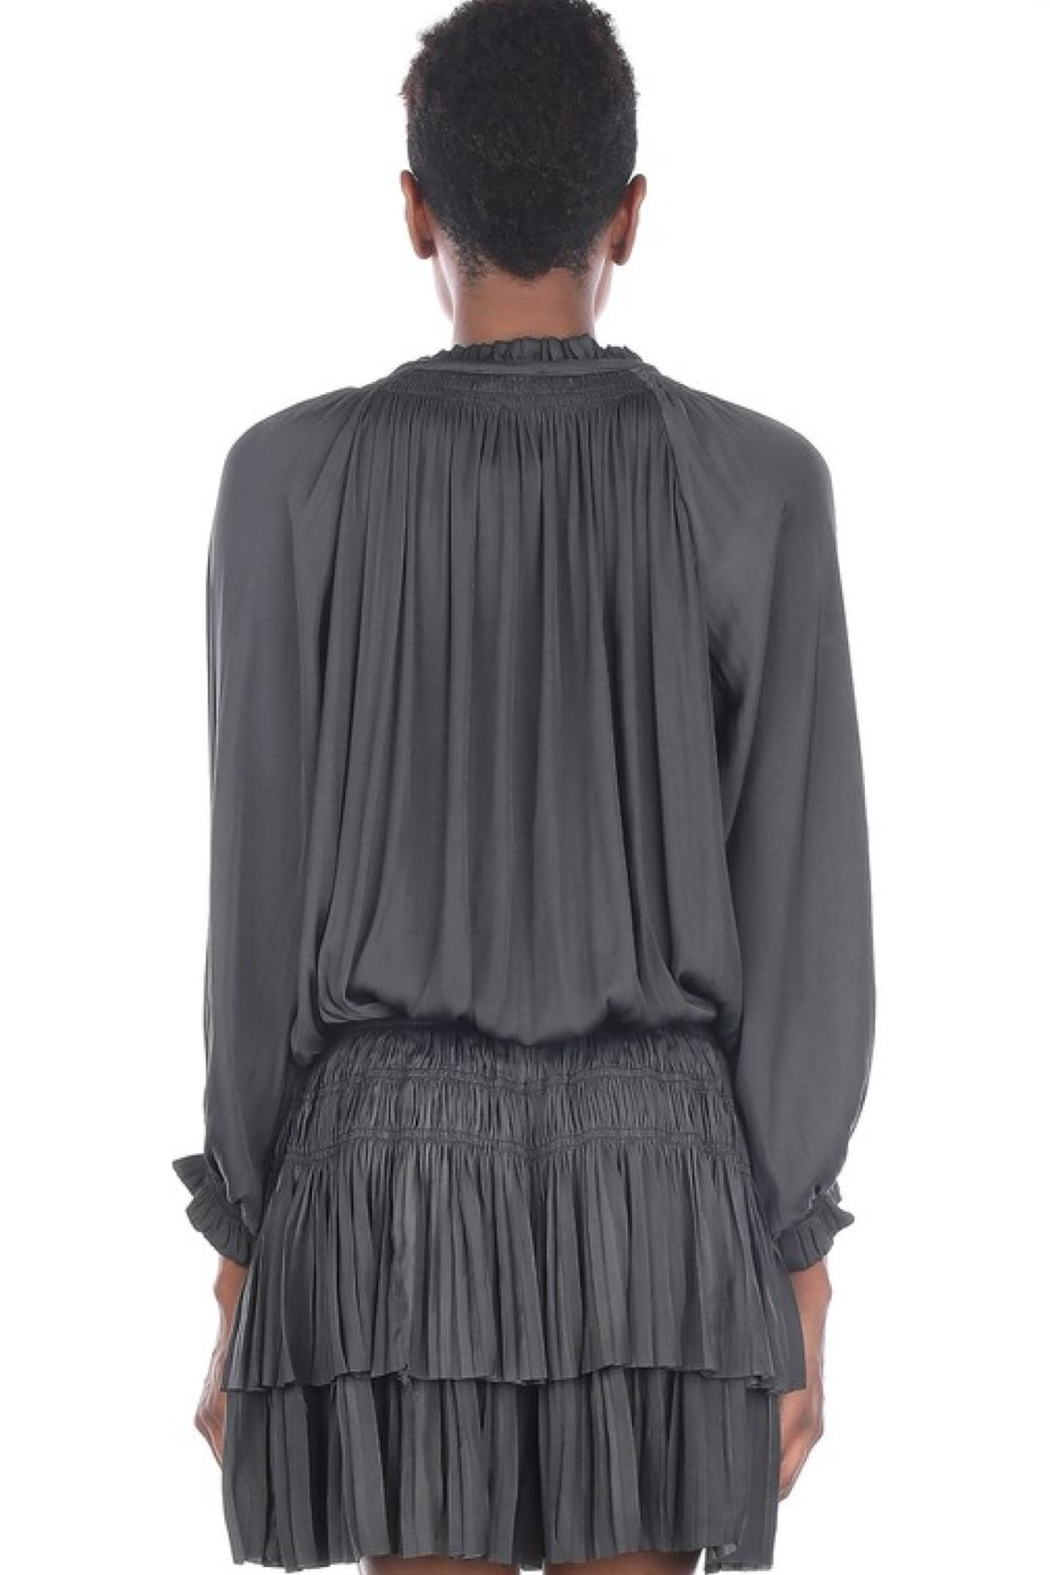 Current Air Short Pleated Dress - Side Cropped Image